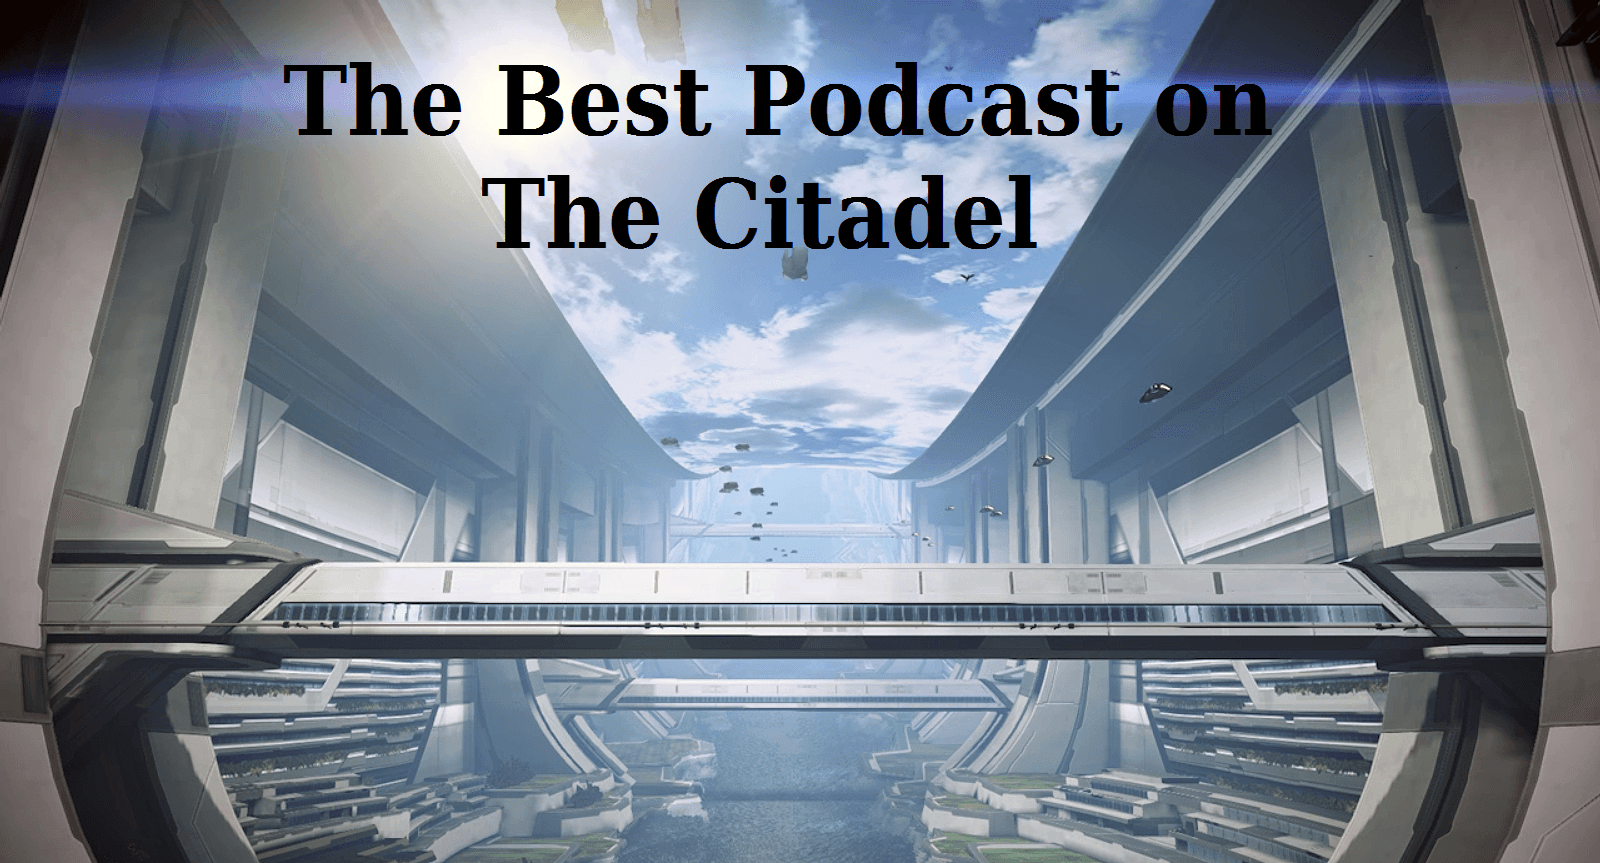 The Best Podcast on the Citadel, Ep. 36